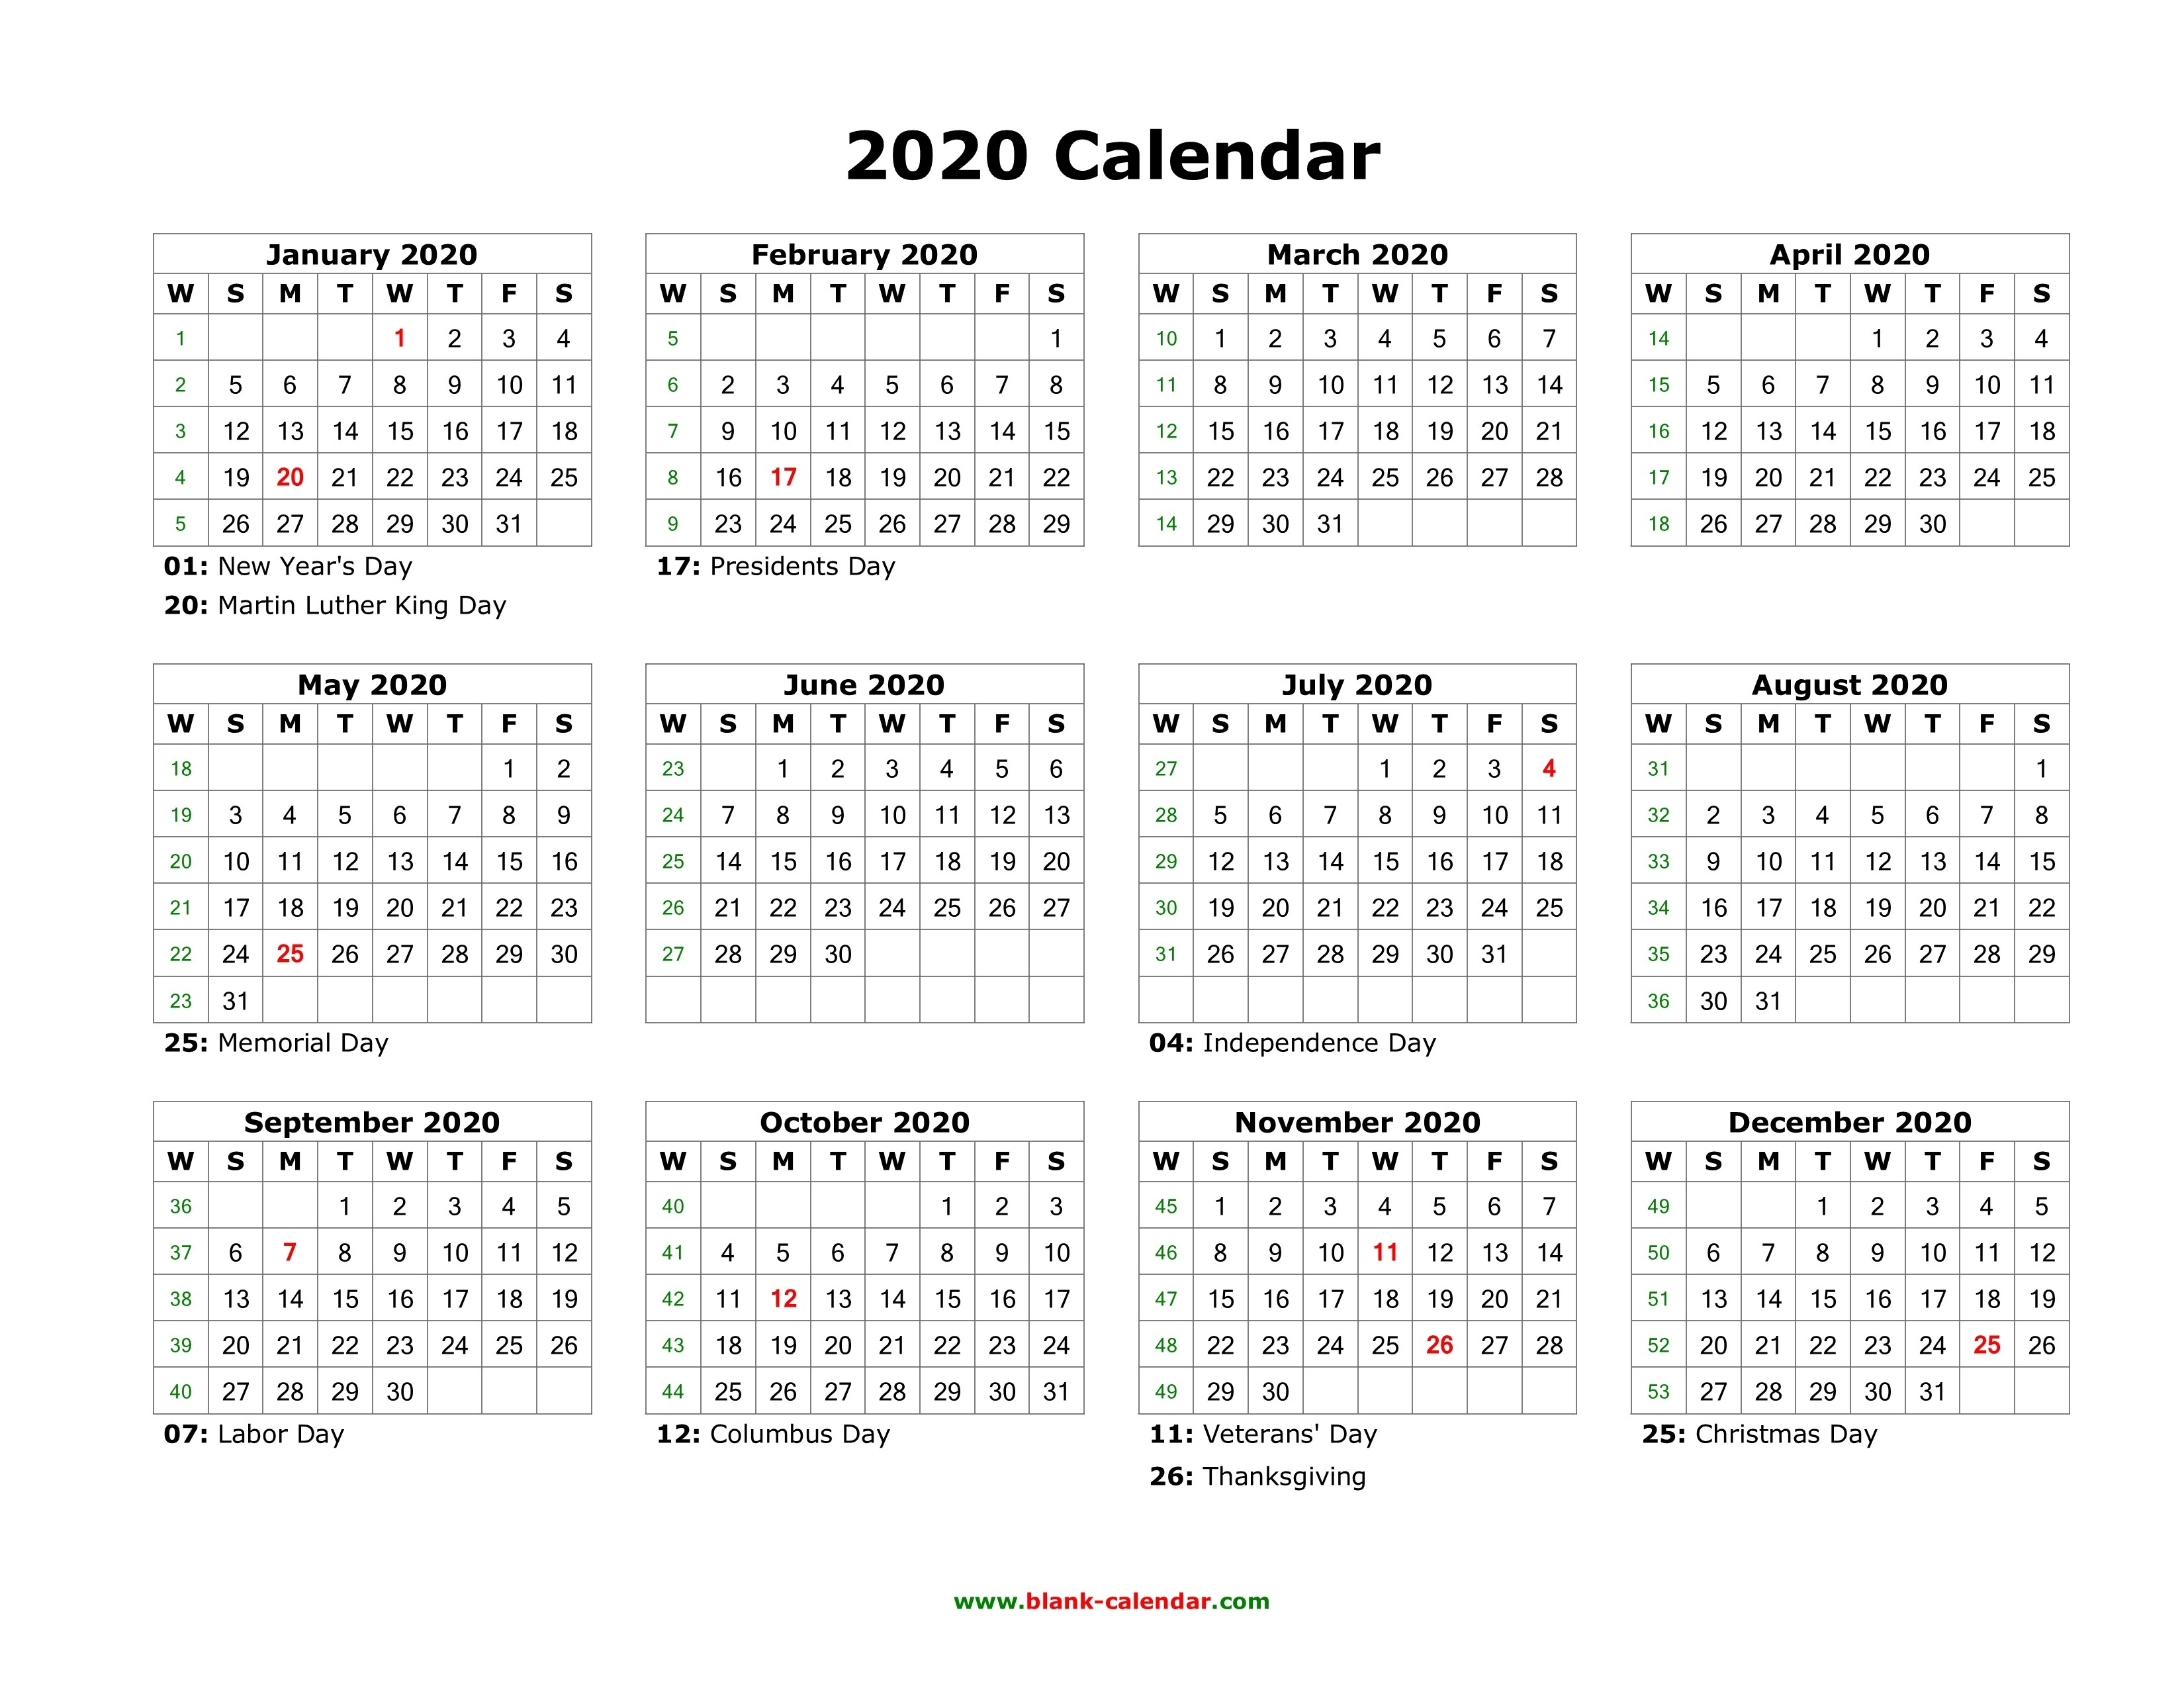 Download Blank Calendar 2020 With Us Holidays (12 Months On-Calendar 2020 Printable Holidays Special